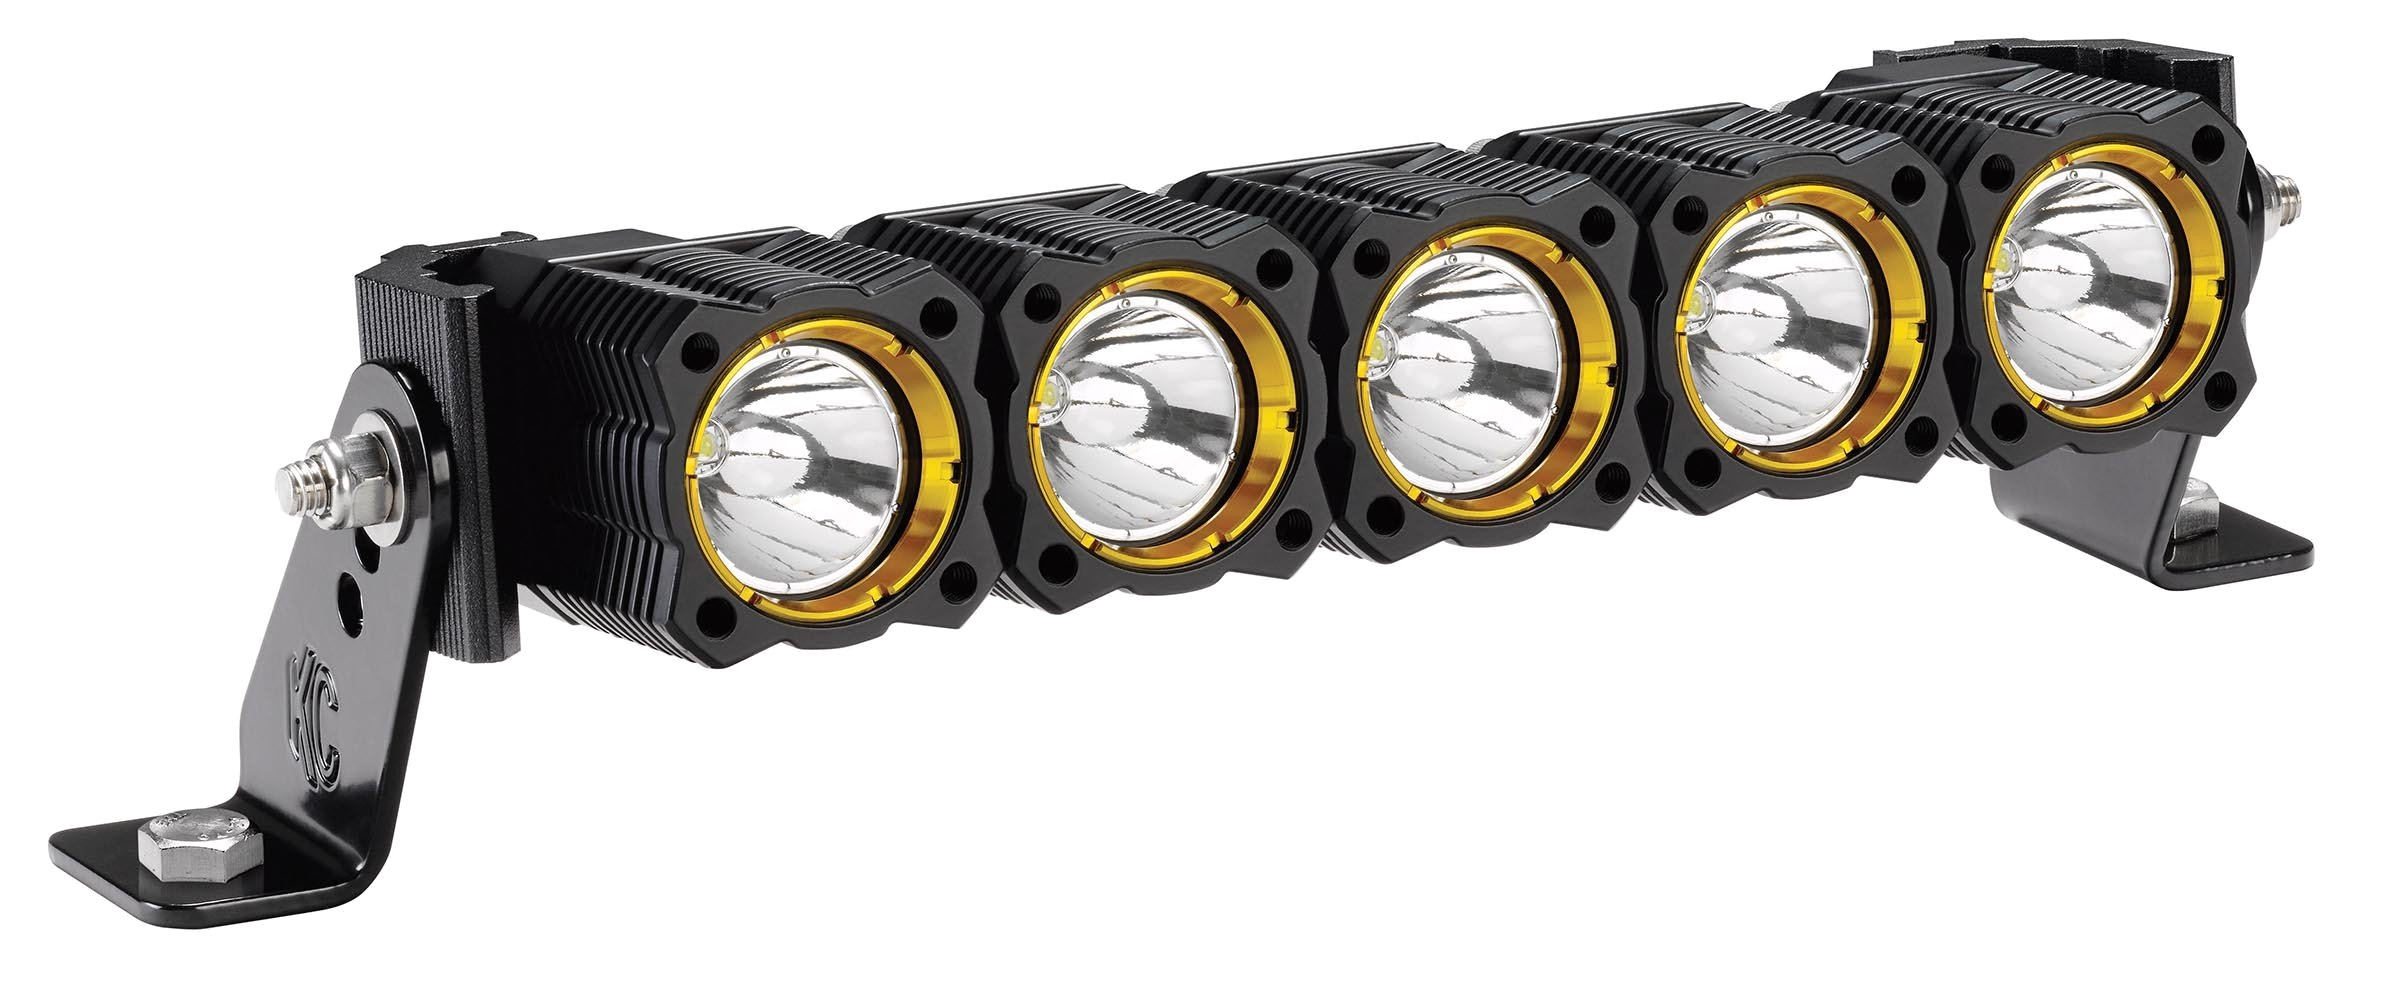 "kc flexa""¢ array led light bars expandable sizes 10 to 50"